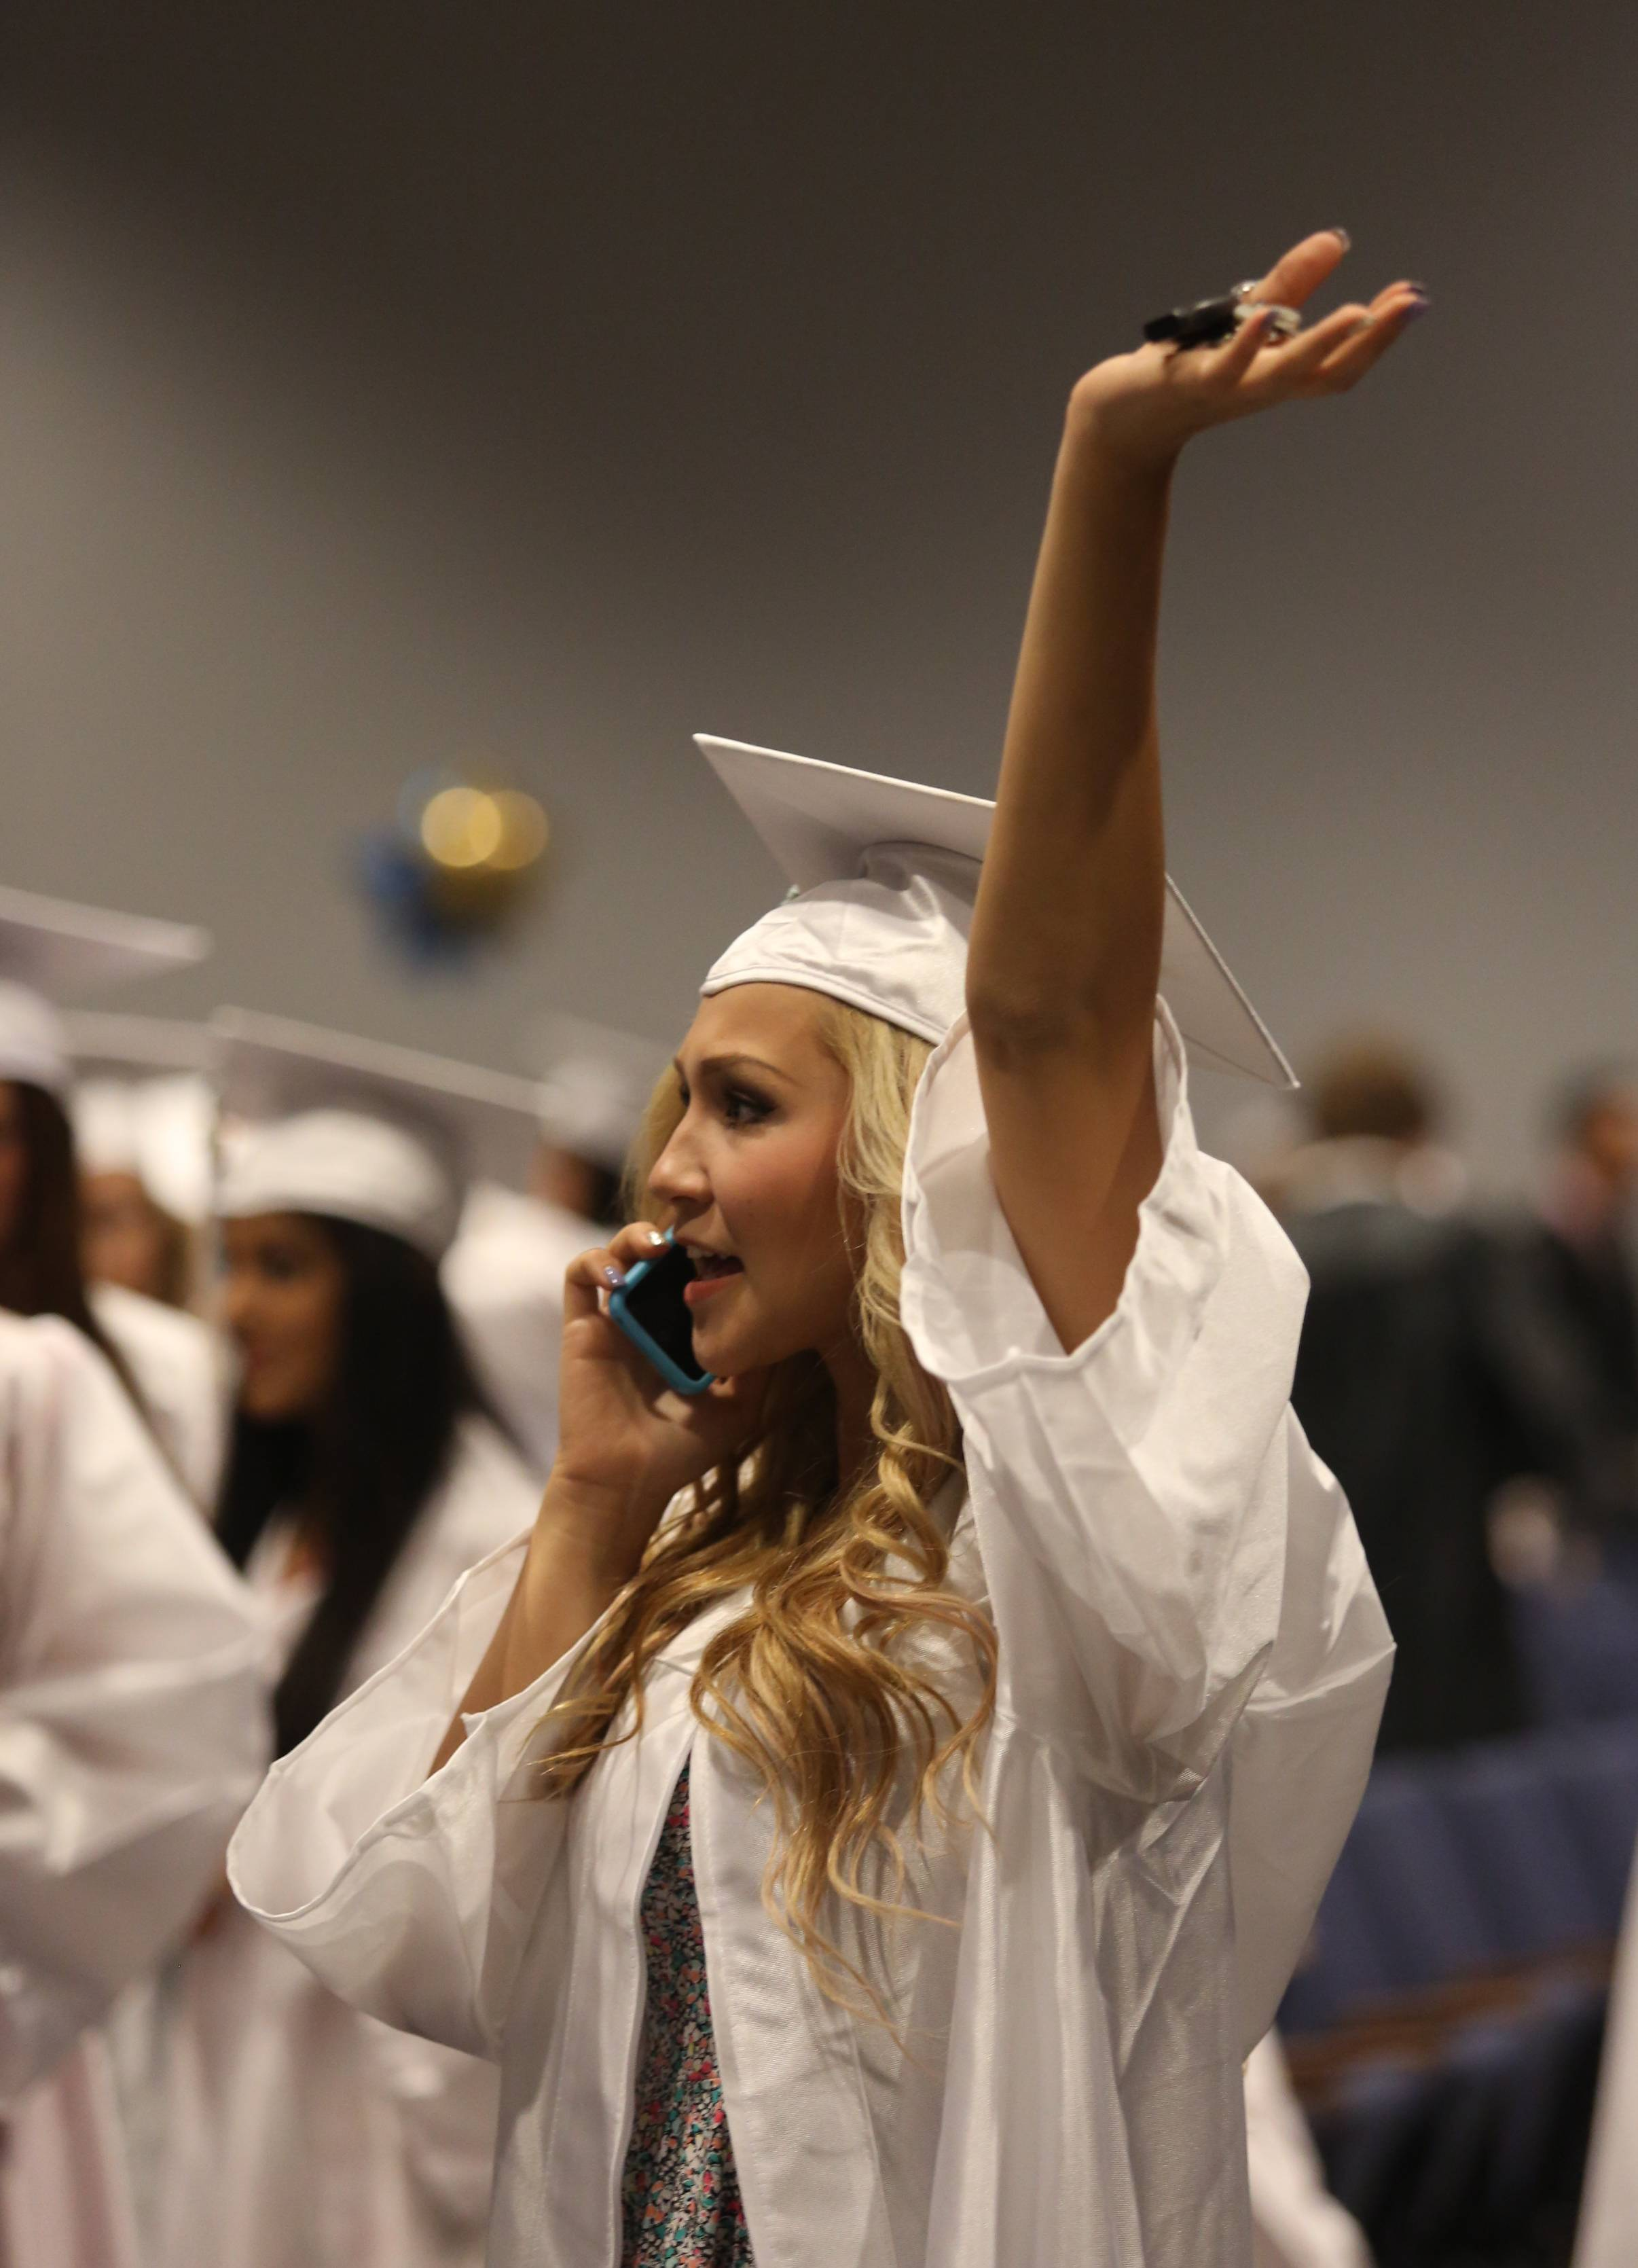 Photos from the Maine West High School graduation on Sunday, June 8th, at the school.